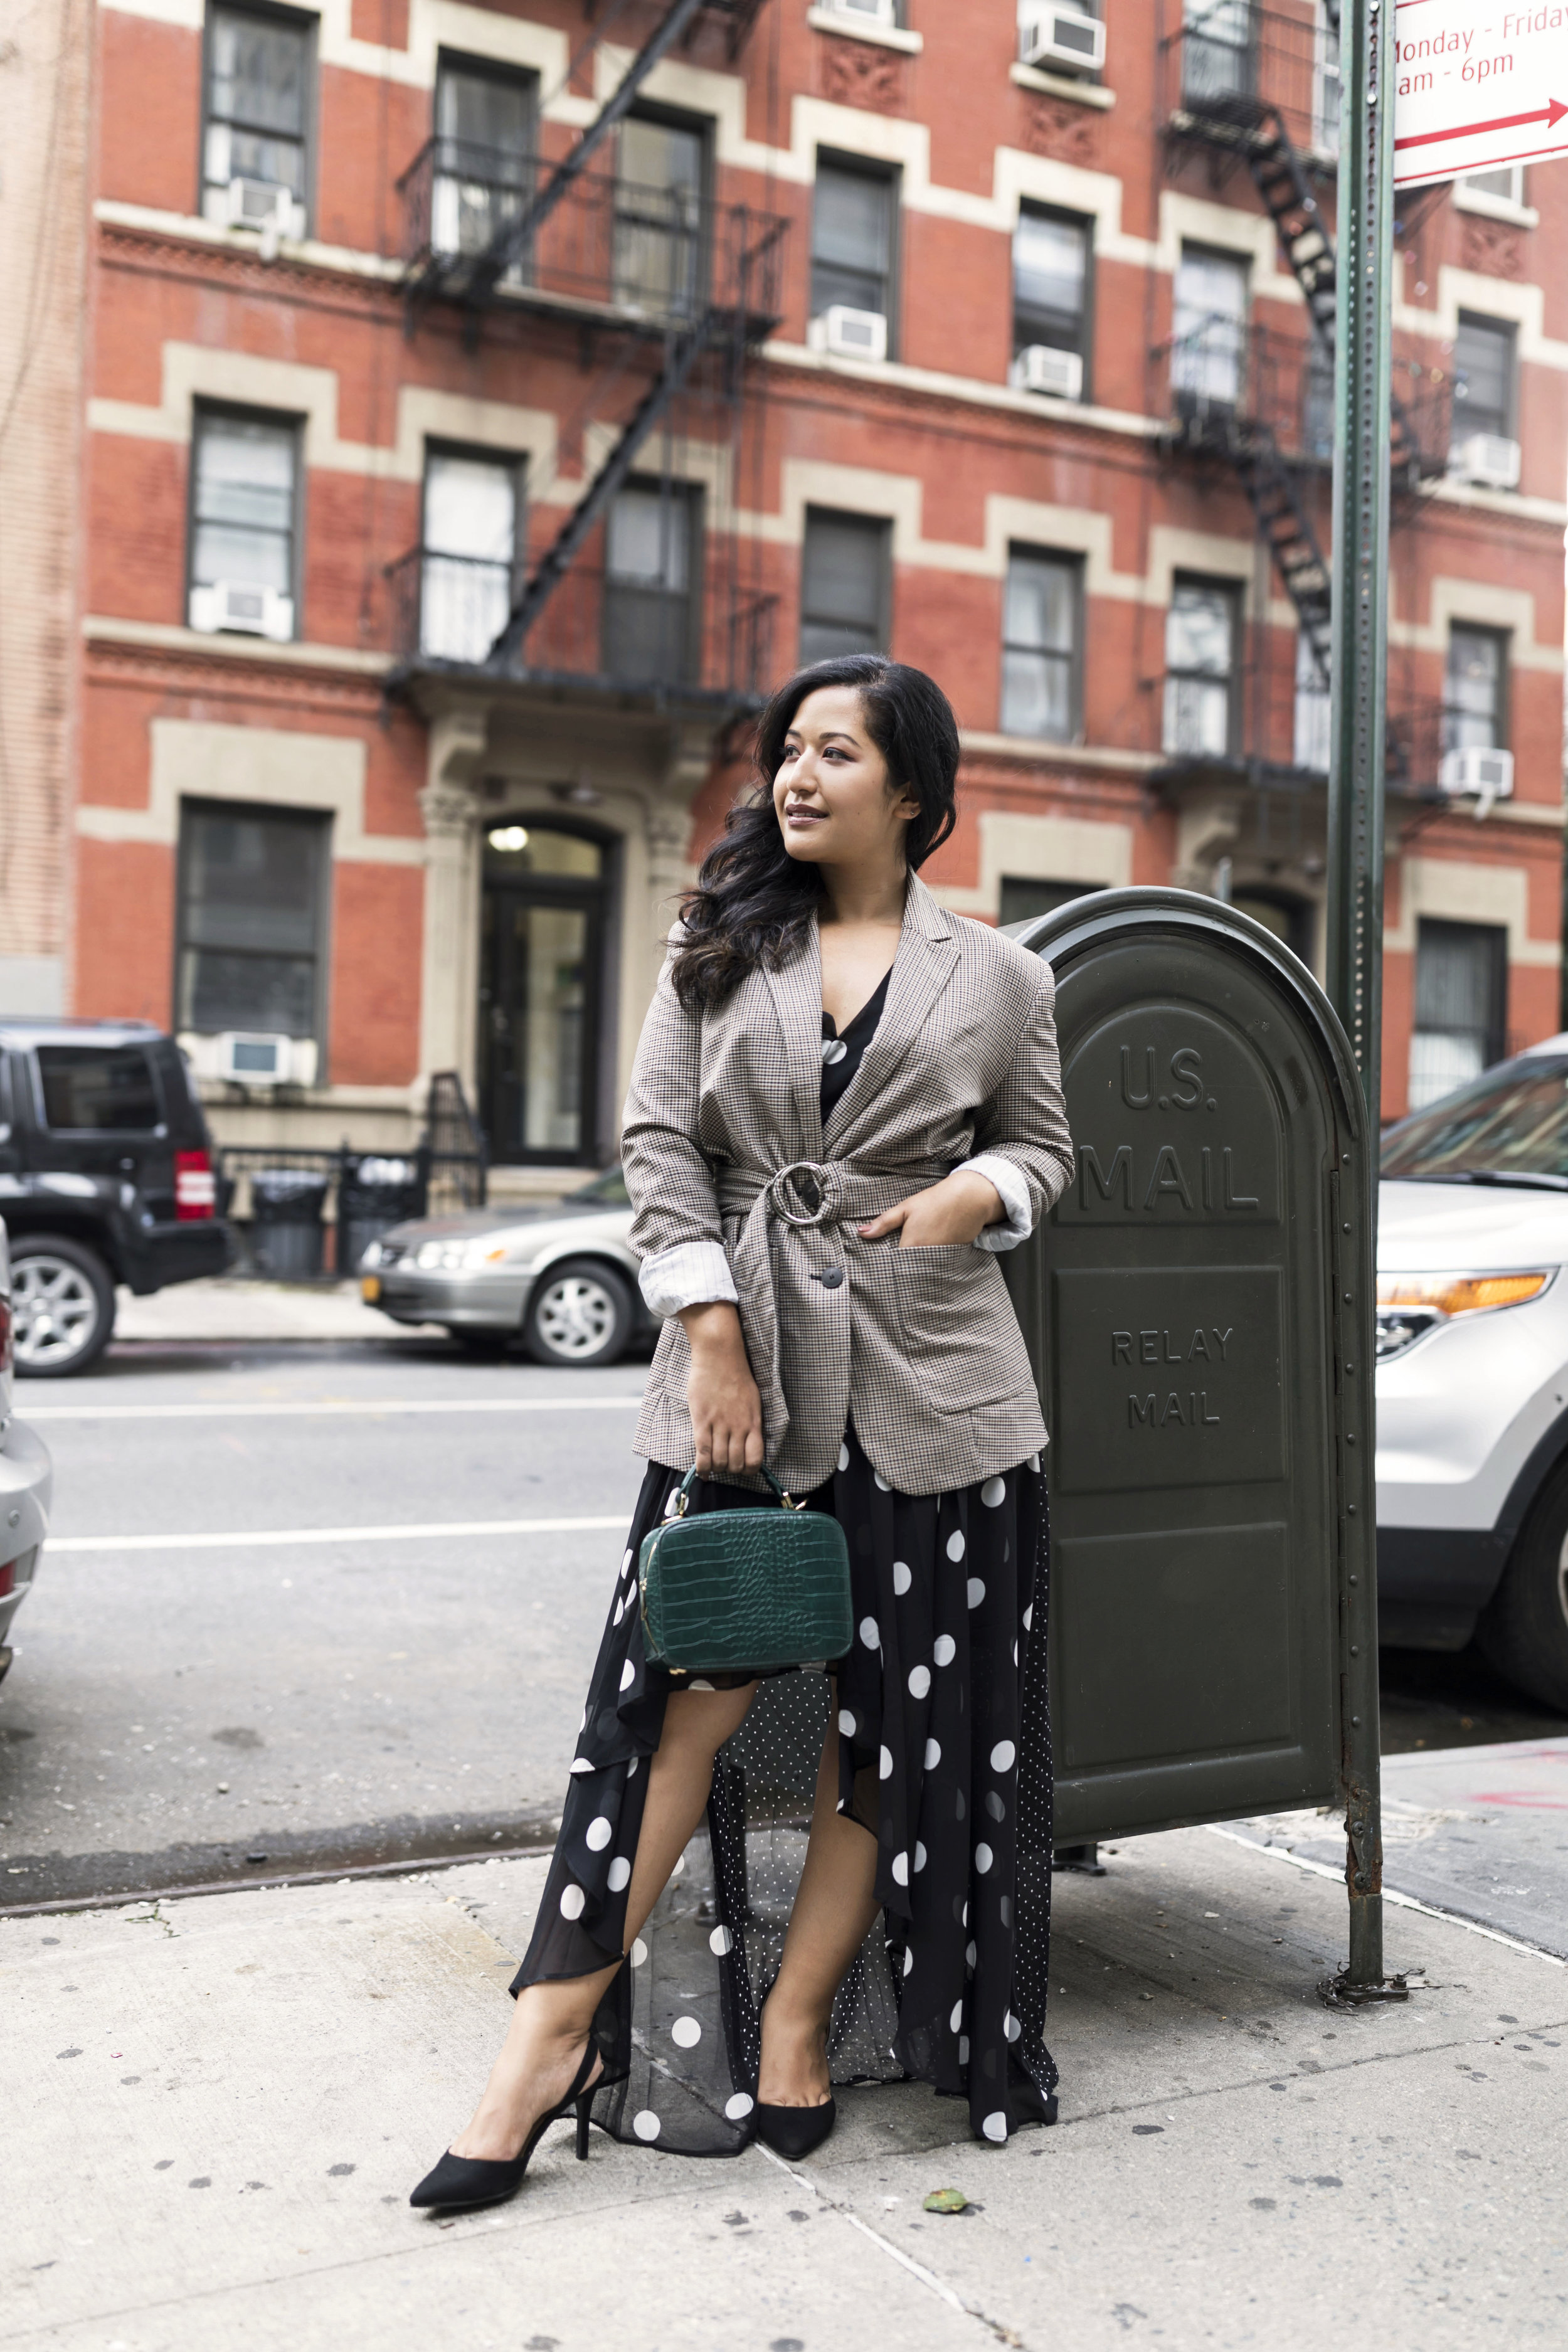 Krity S x Fall Trends x Plaid and Polka Dots2.jpg